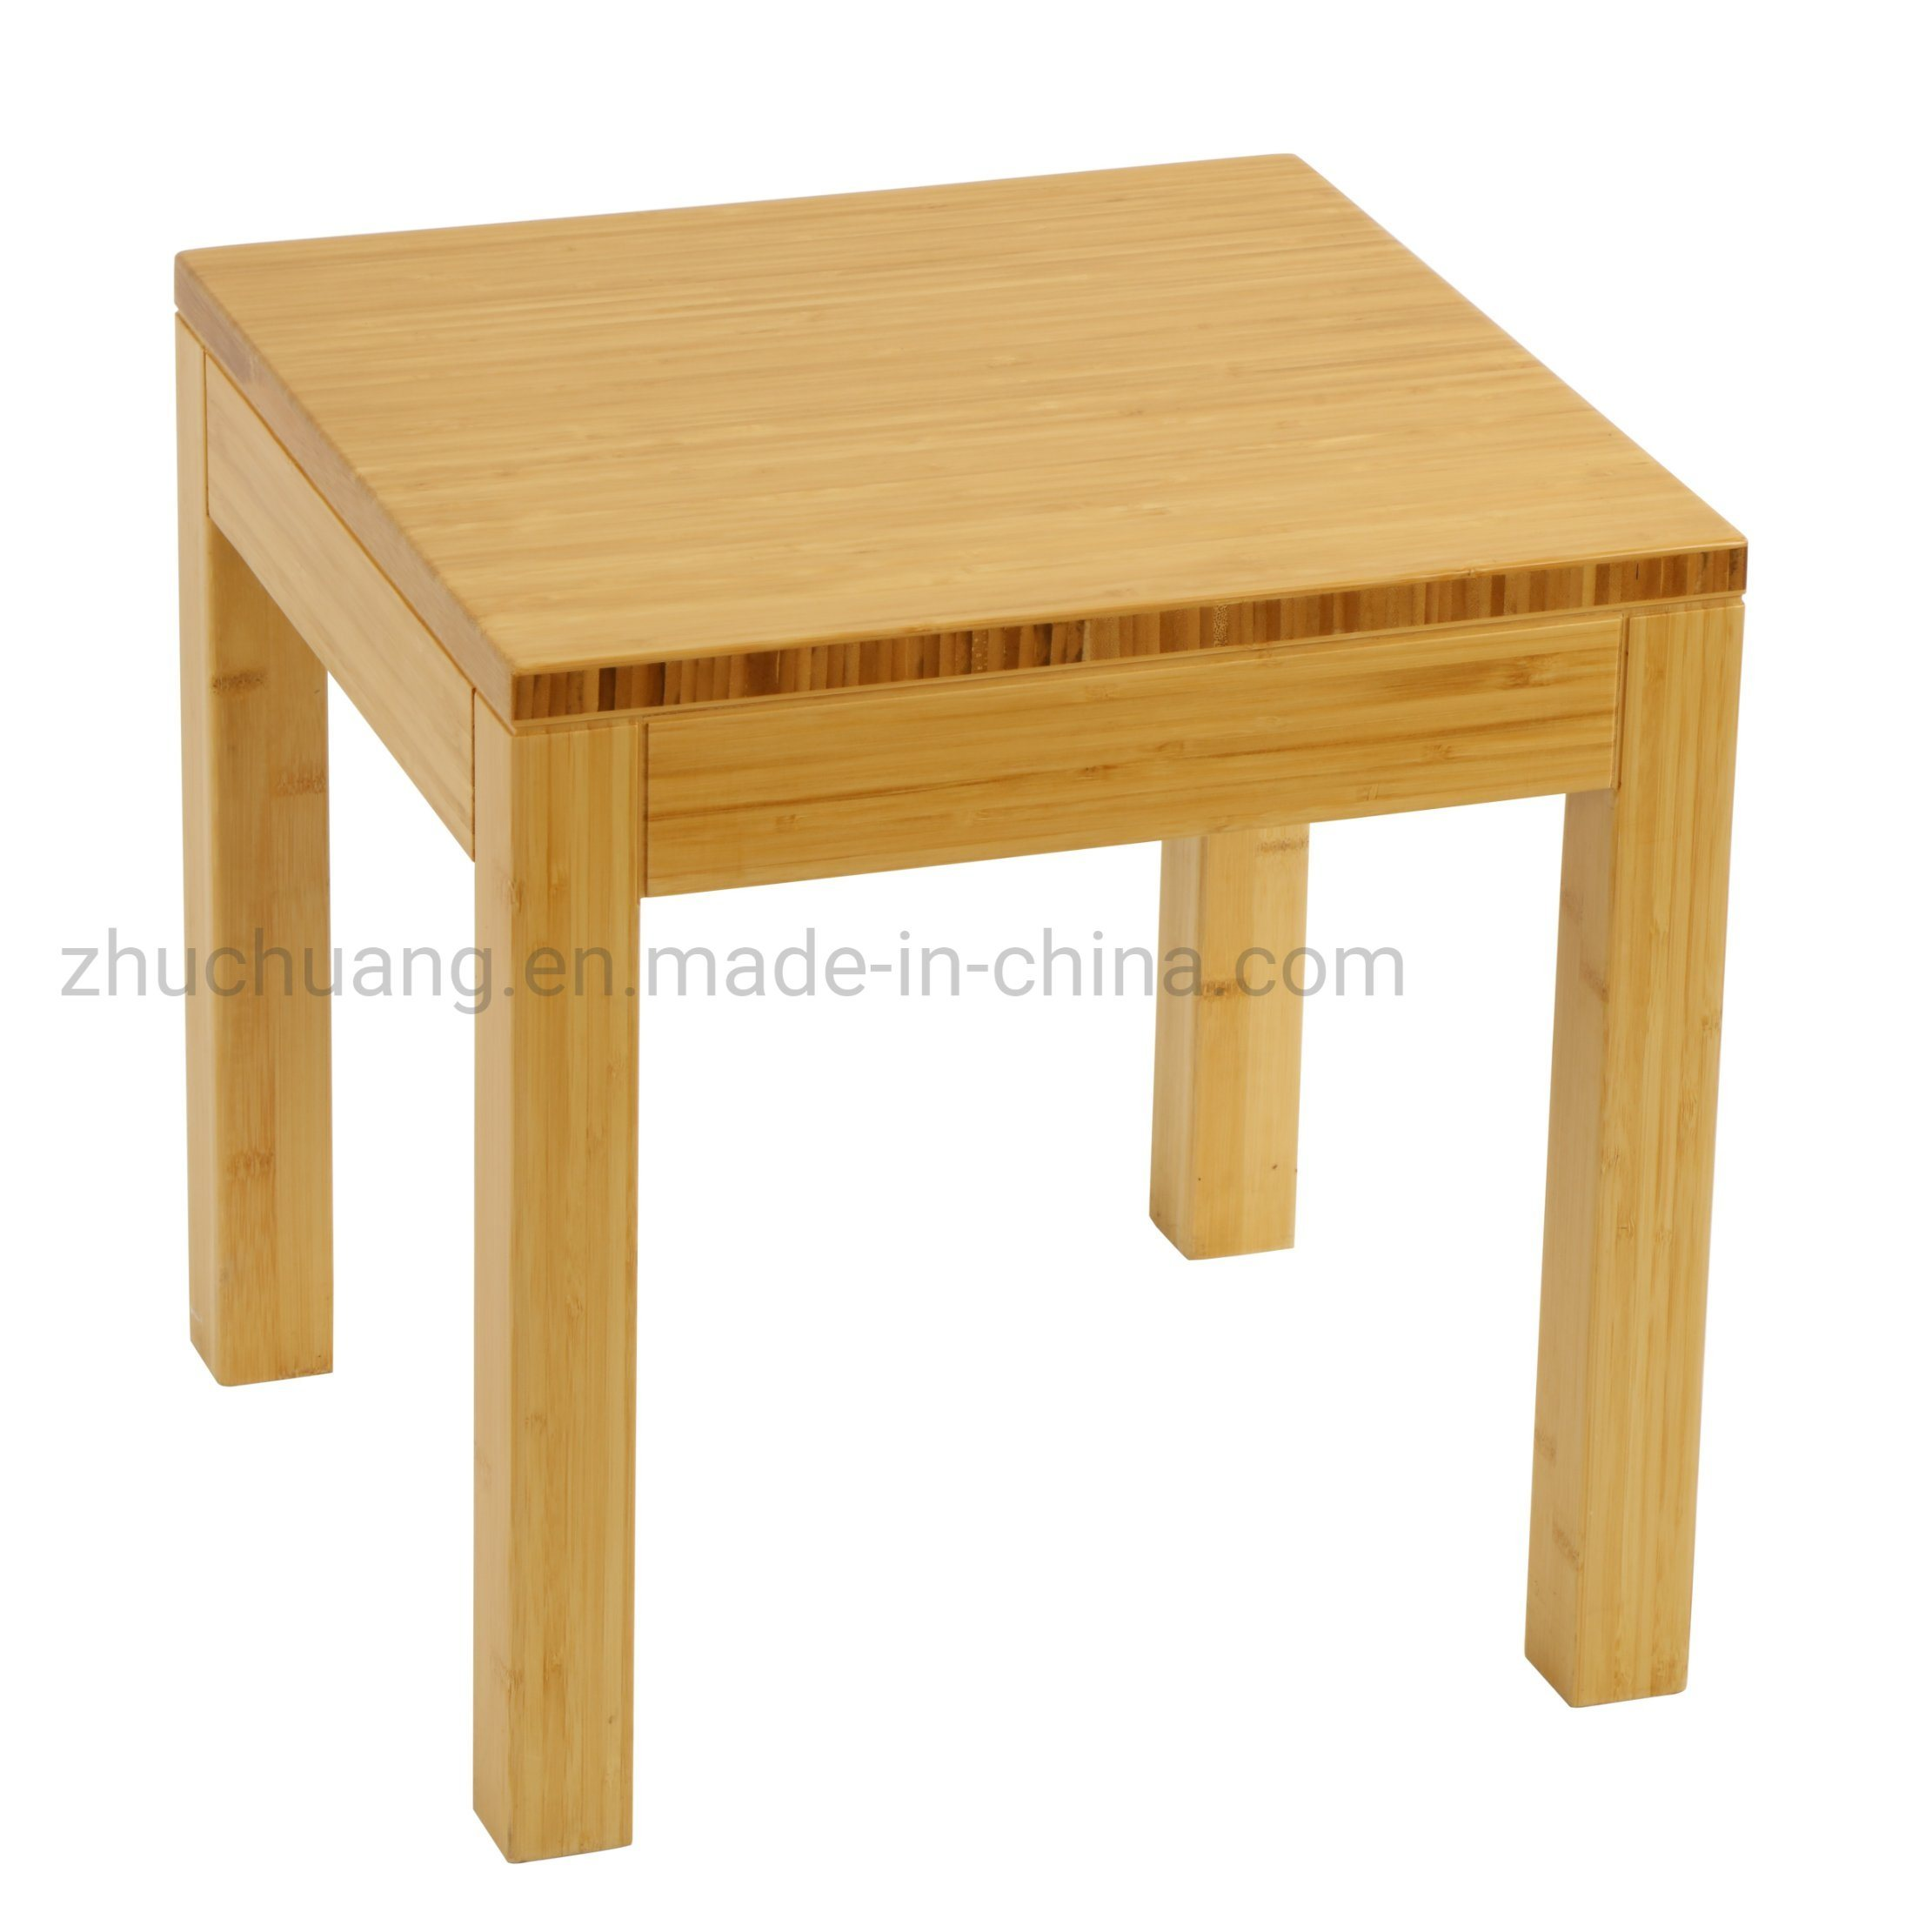 China Modern Wholesale High Quality Wooden Indoor Foot Stool Chair China Foot Stool Stool Chair Modern